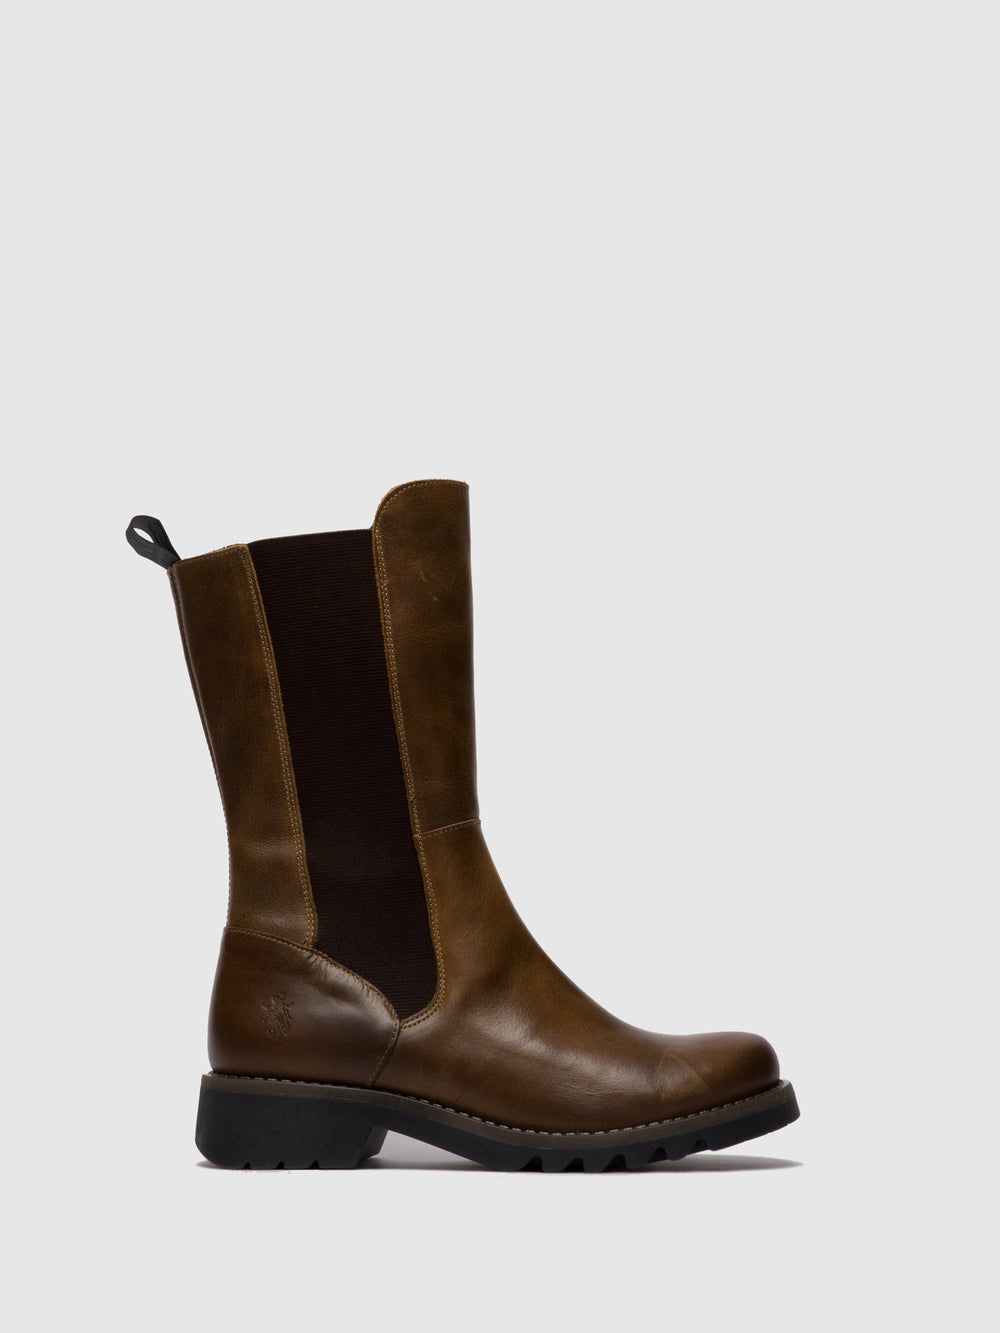 Chelsea Boots RELM641FLY RUG CAMEL